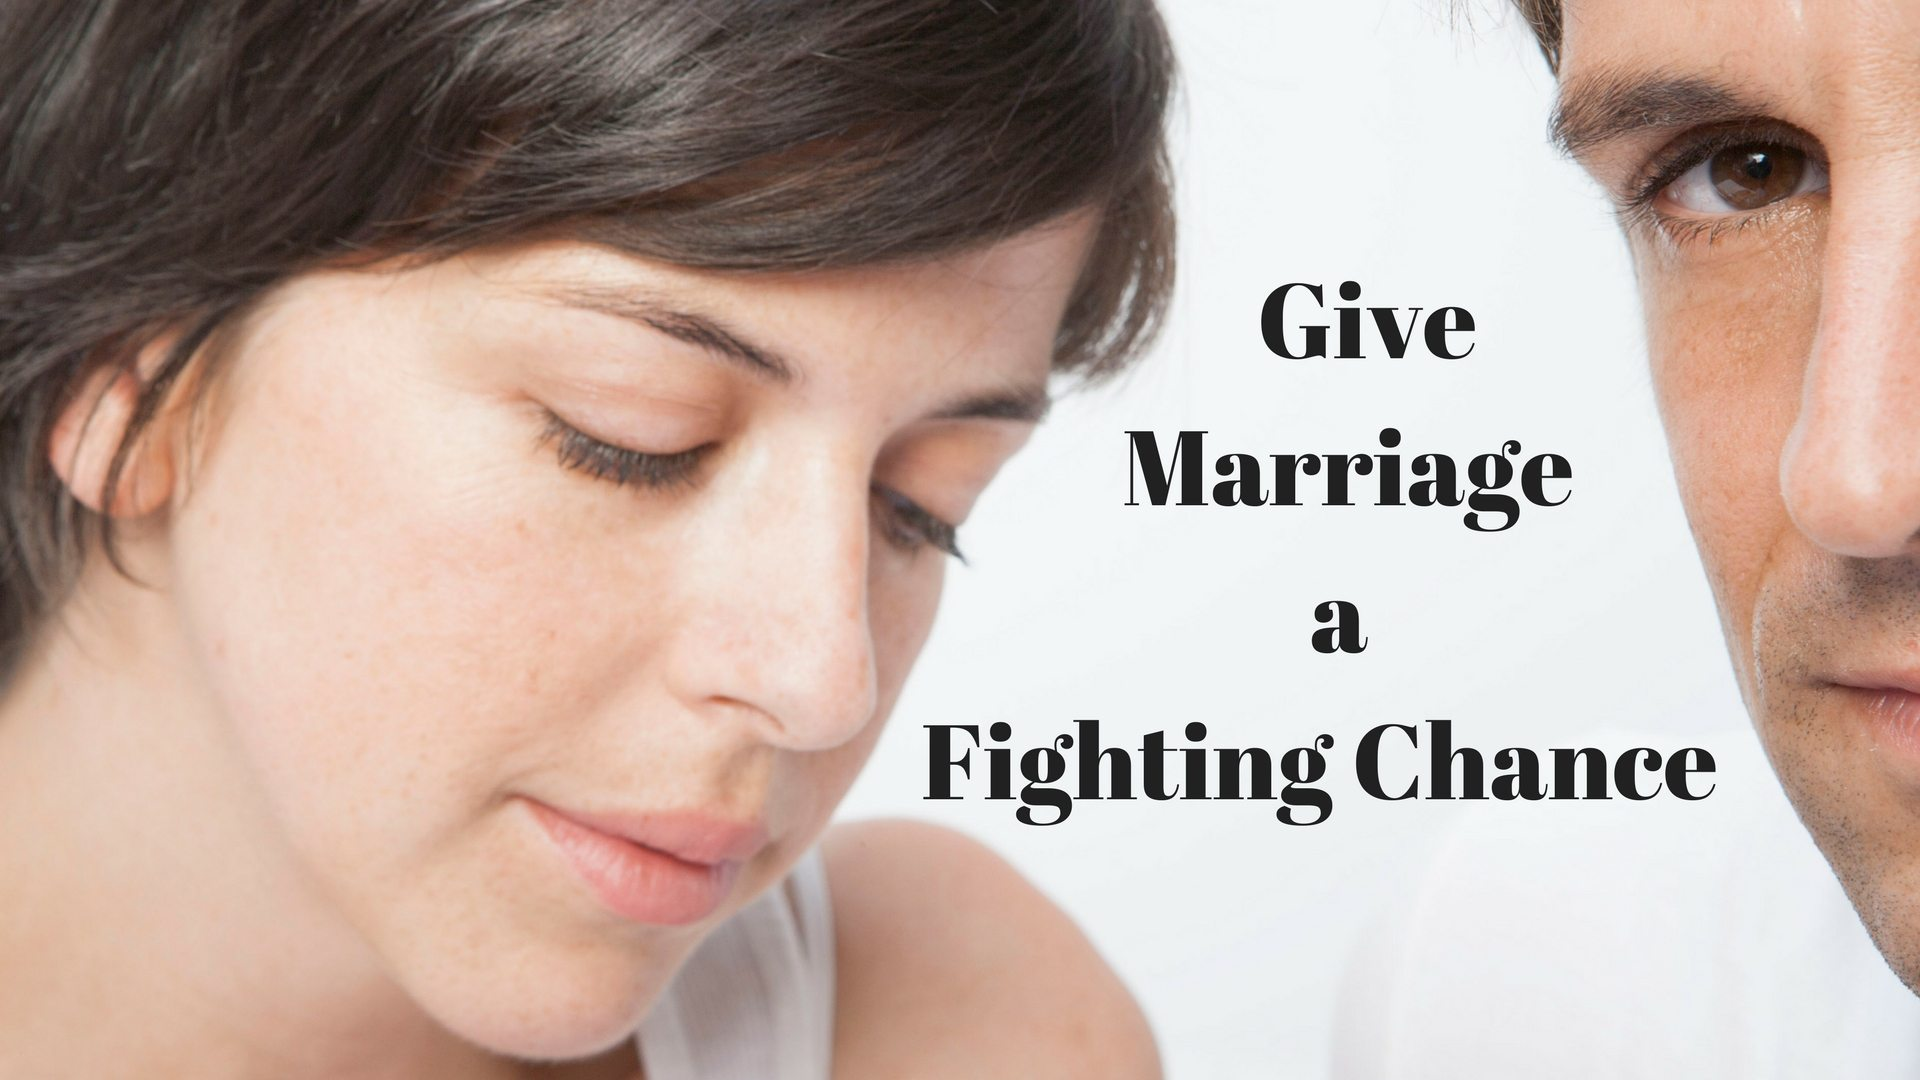 Give Marriage Fighting Chance Graphic stock canva